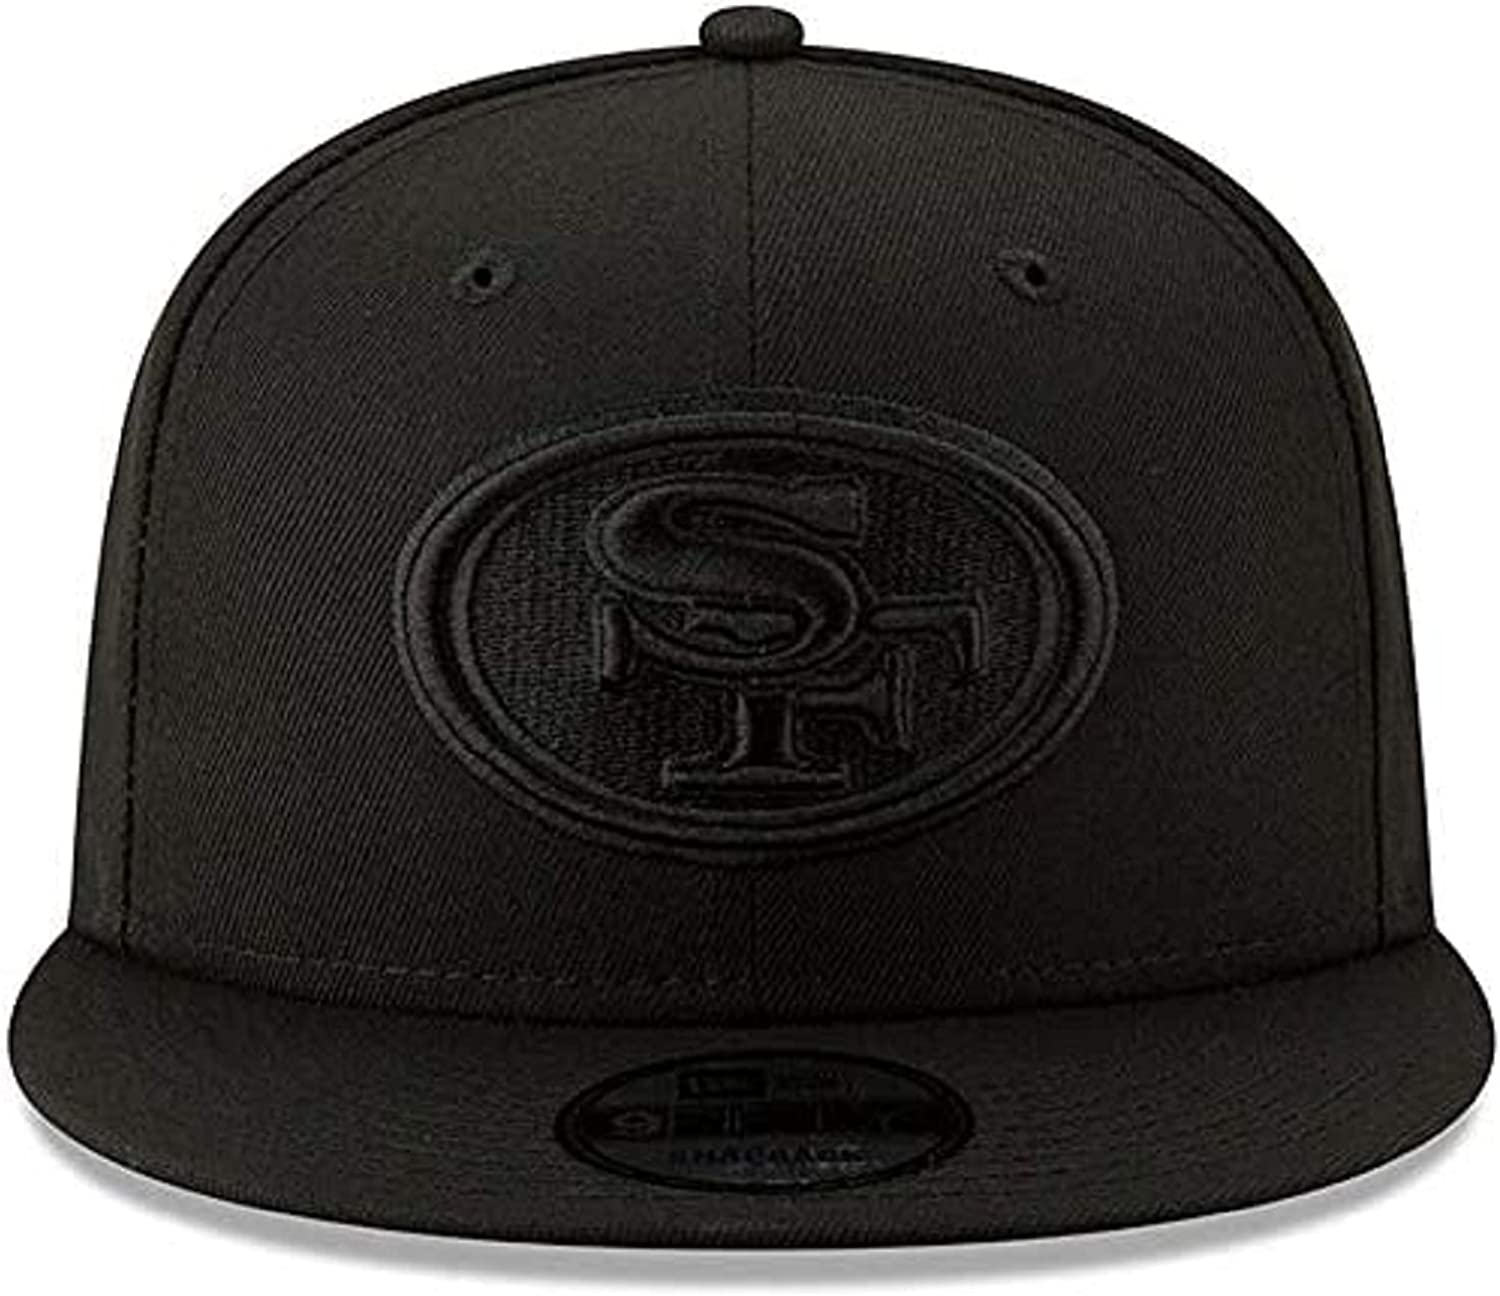 New Era 100% Authentic Exclusive Fresno Mall 49ers 950 Snapback Cap 9FIFTY H Super beauty product restock quality top